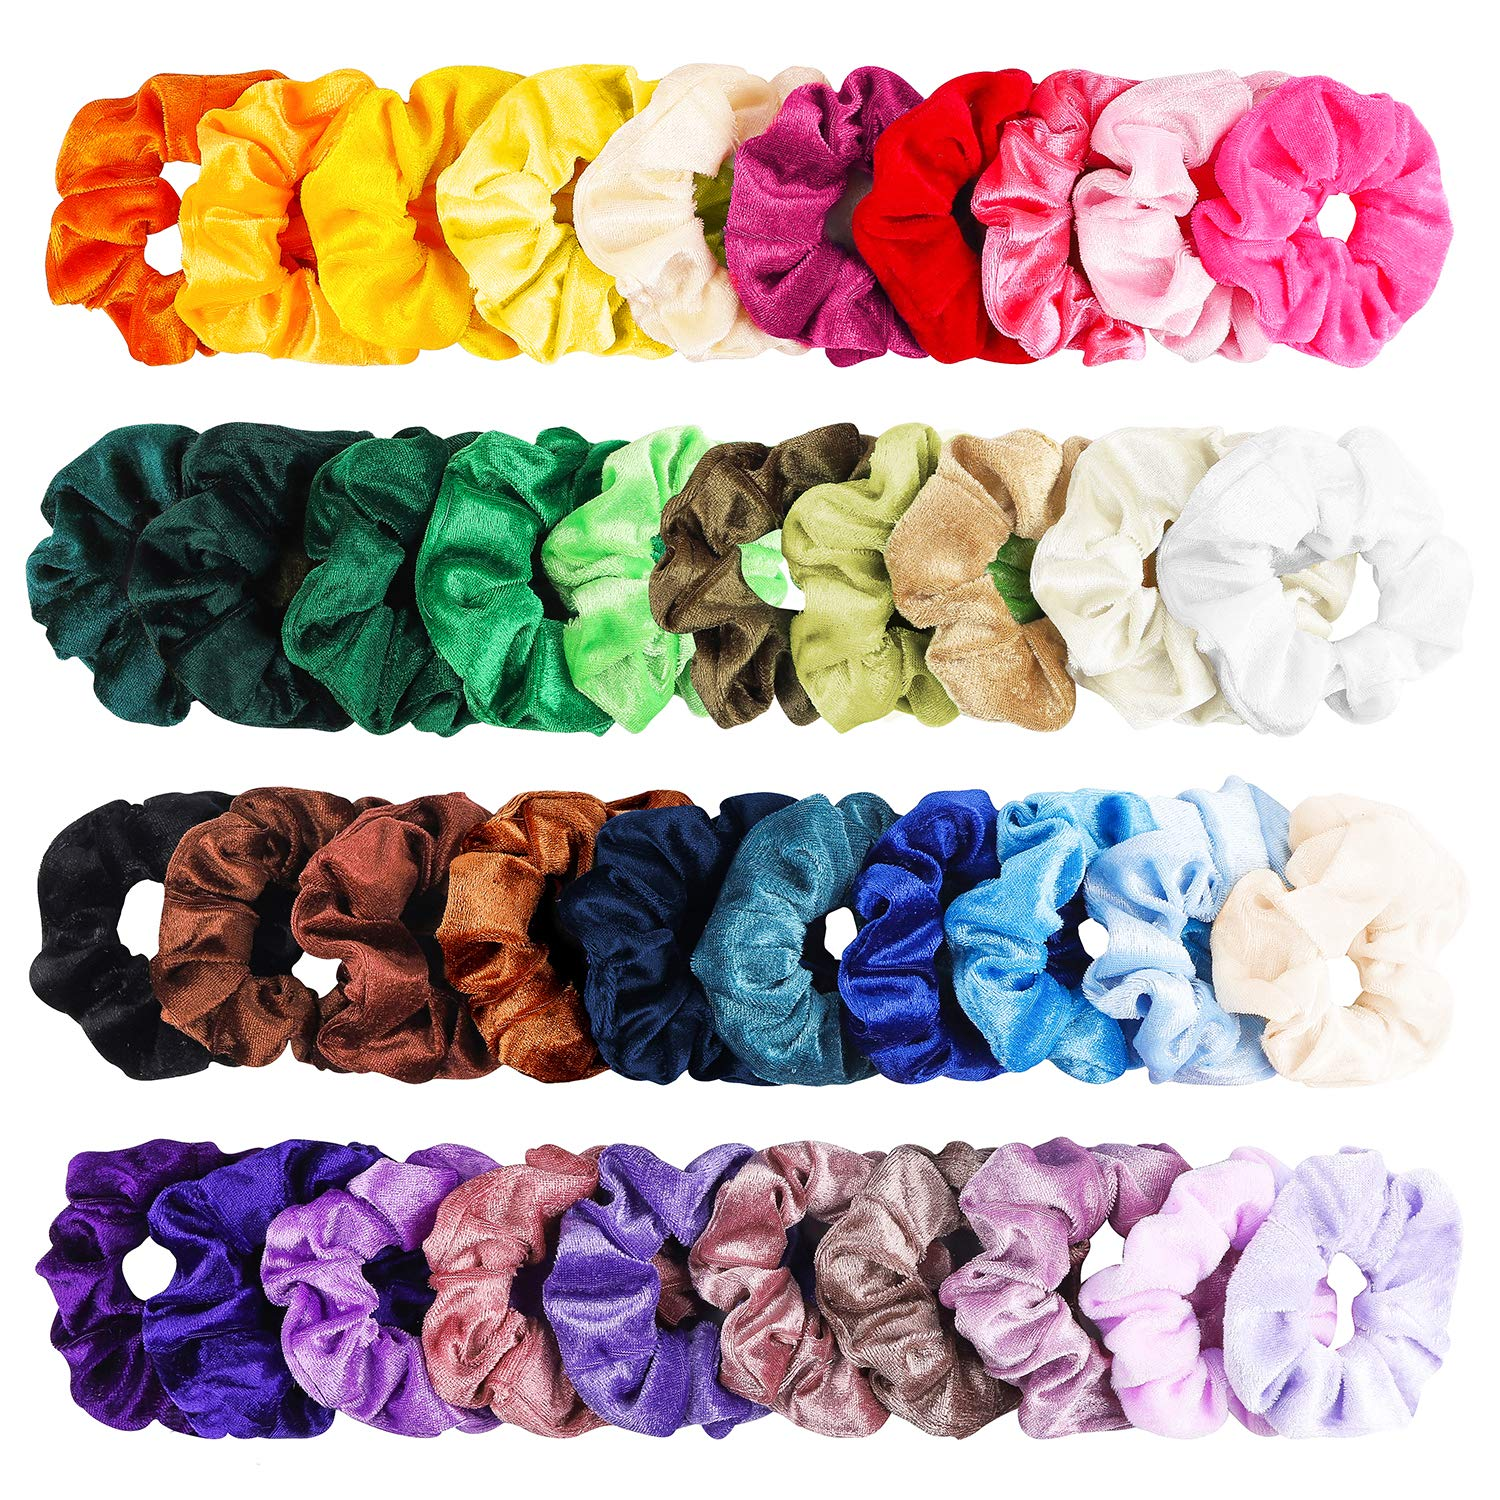 40Pcs Colorful Velvet Hair Scrunchies Set, Elastic Hair Bobbles for Ponytail Holder, Strong Hold Hair Accessories Ropes Scrunchie for Women Solid Color Traceless Hair Bands